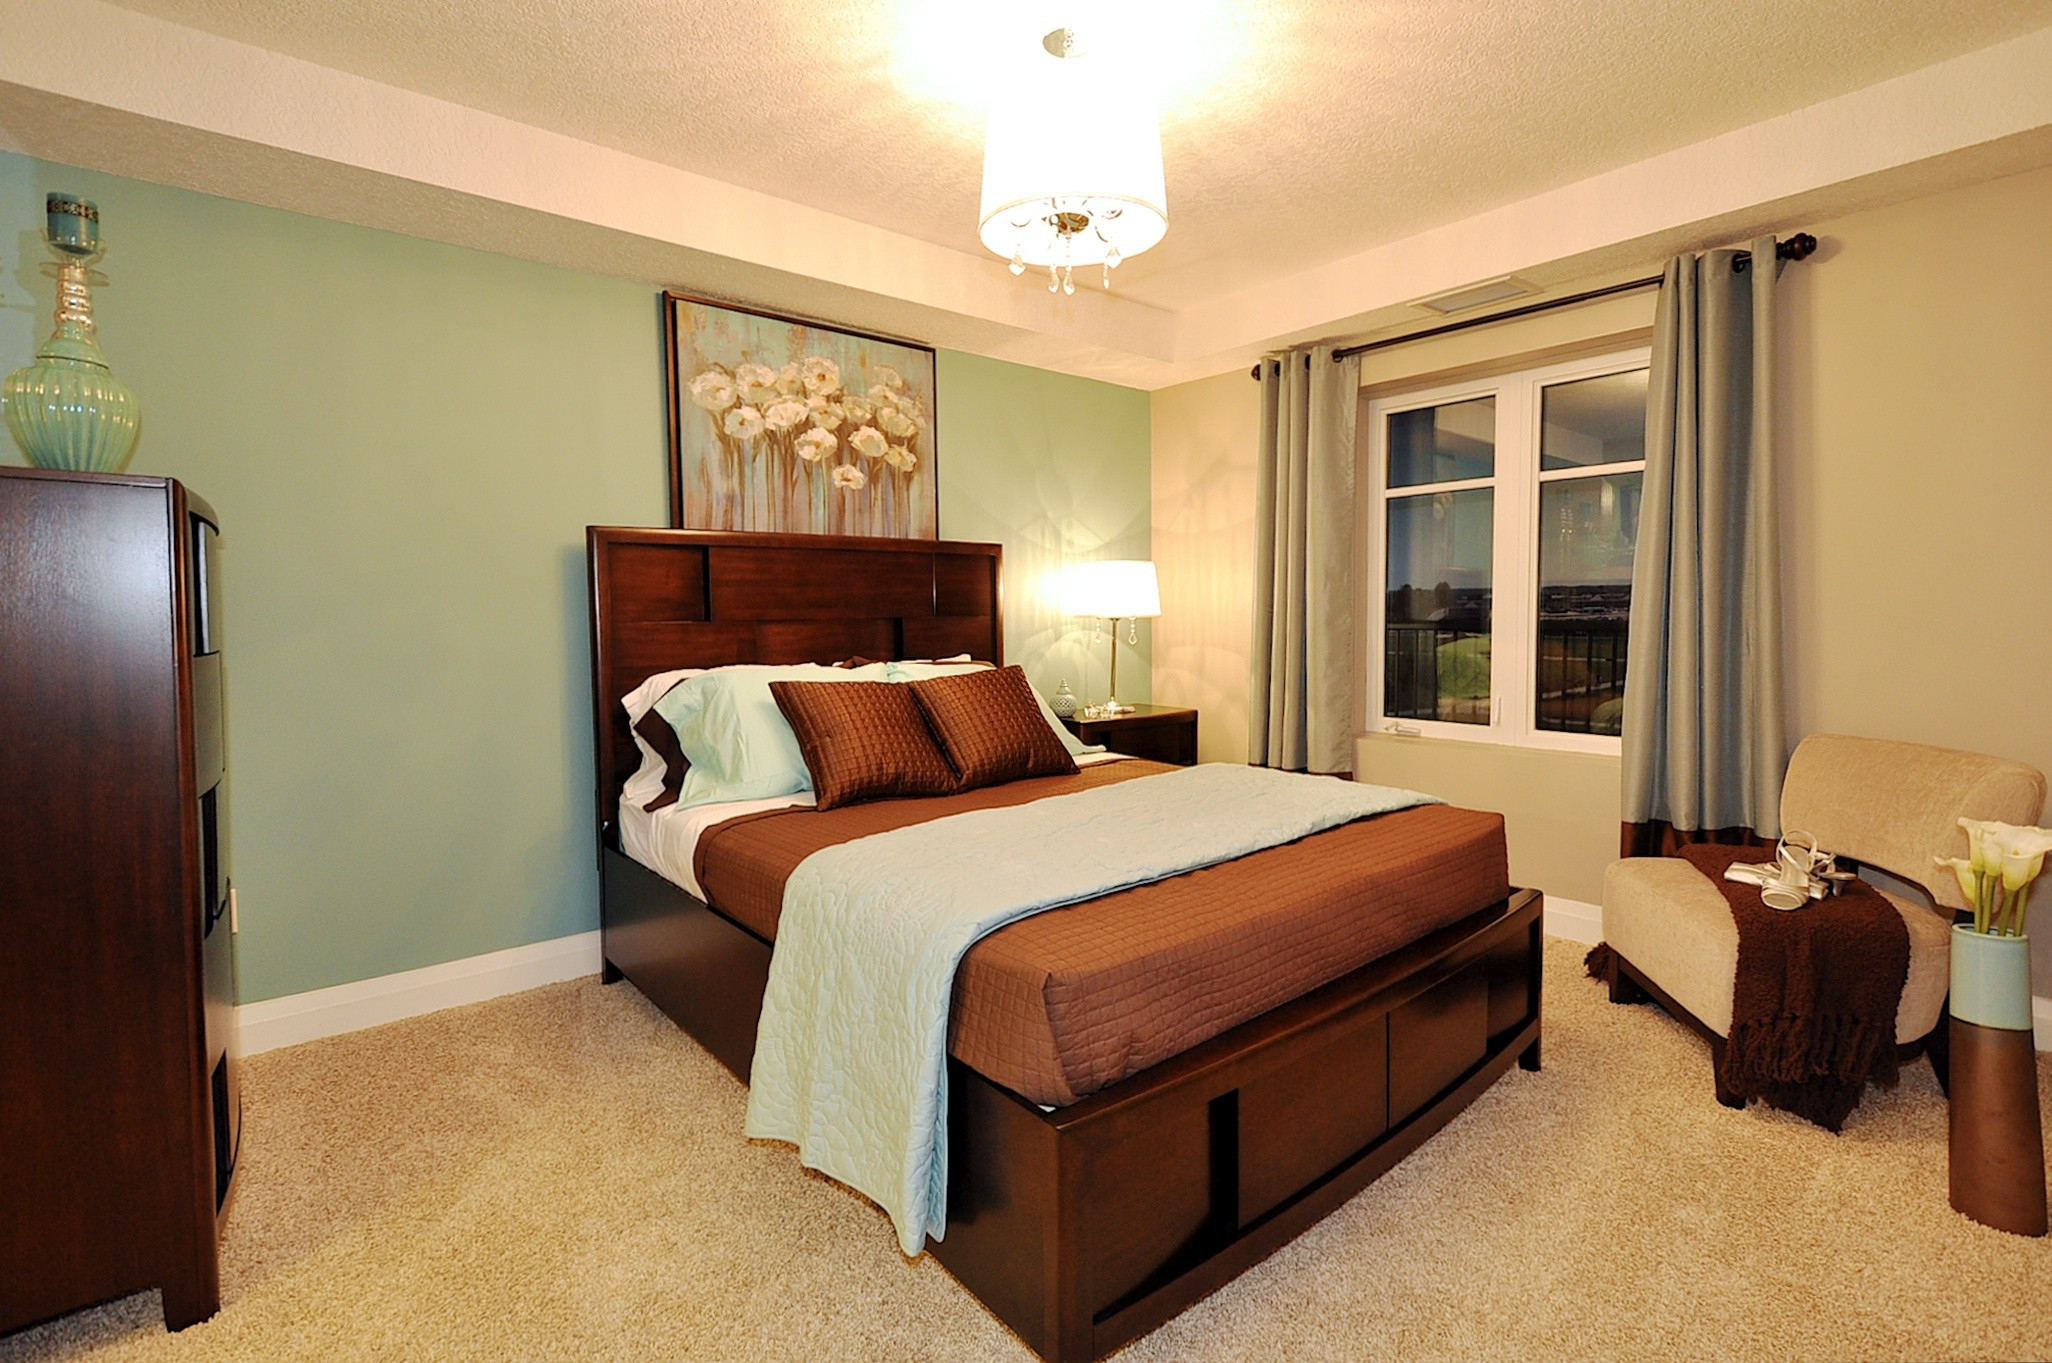 Feng Shui Bedroom Colors Acnn Decor in size 2052 X 1363